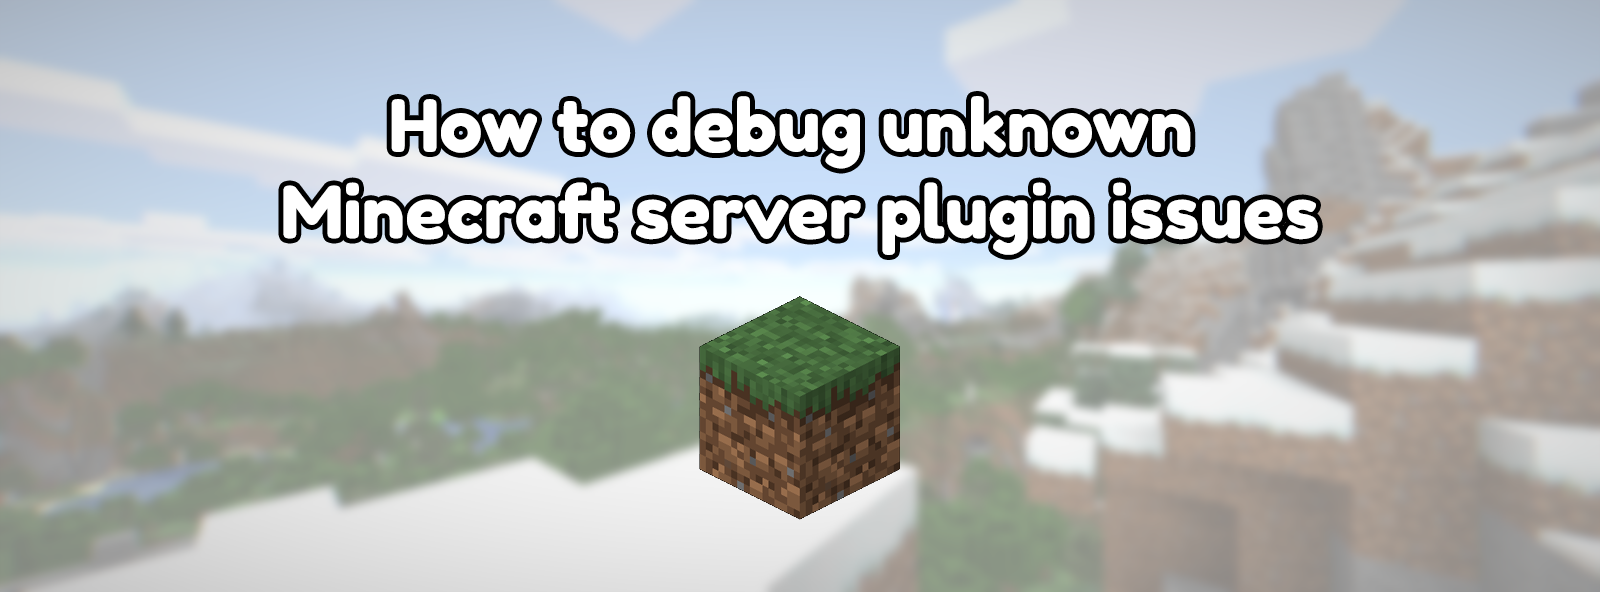 How to debug unknown Minecraft server plugin issues